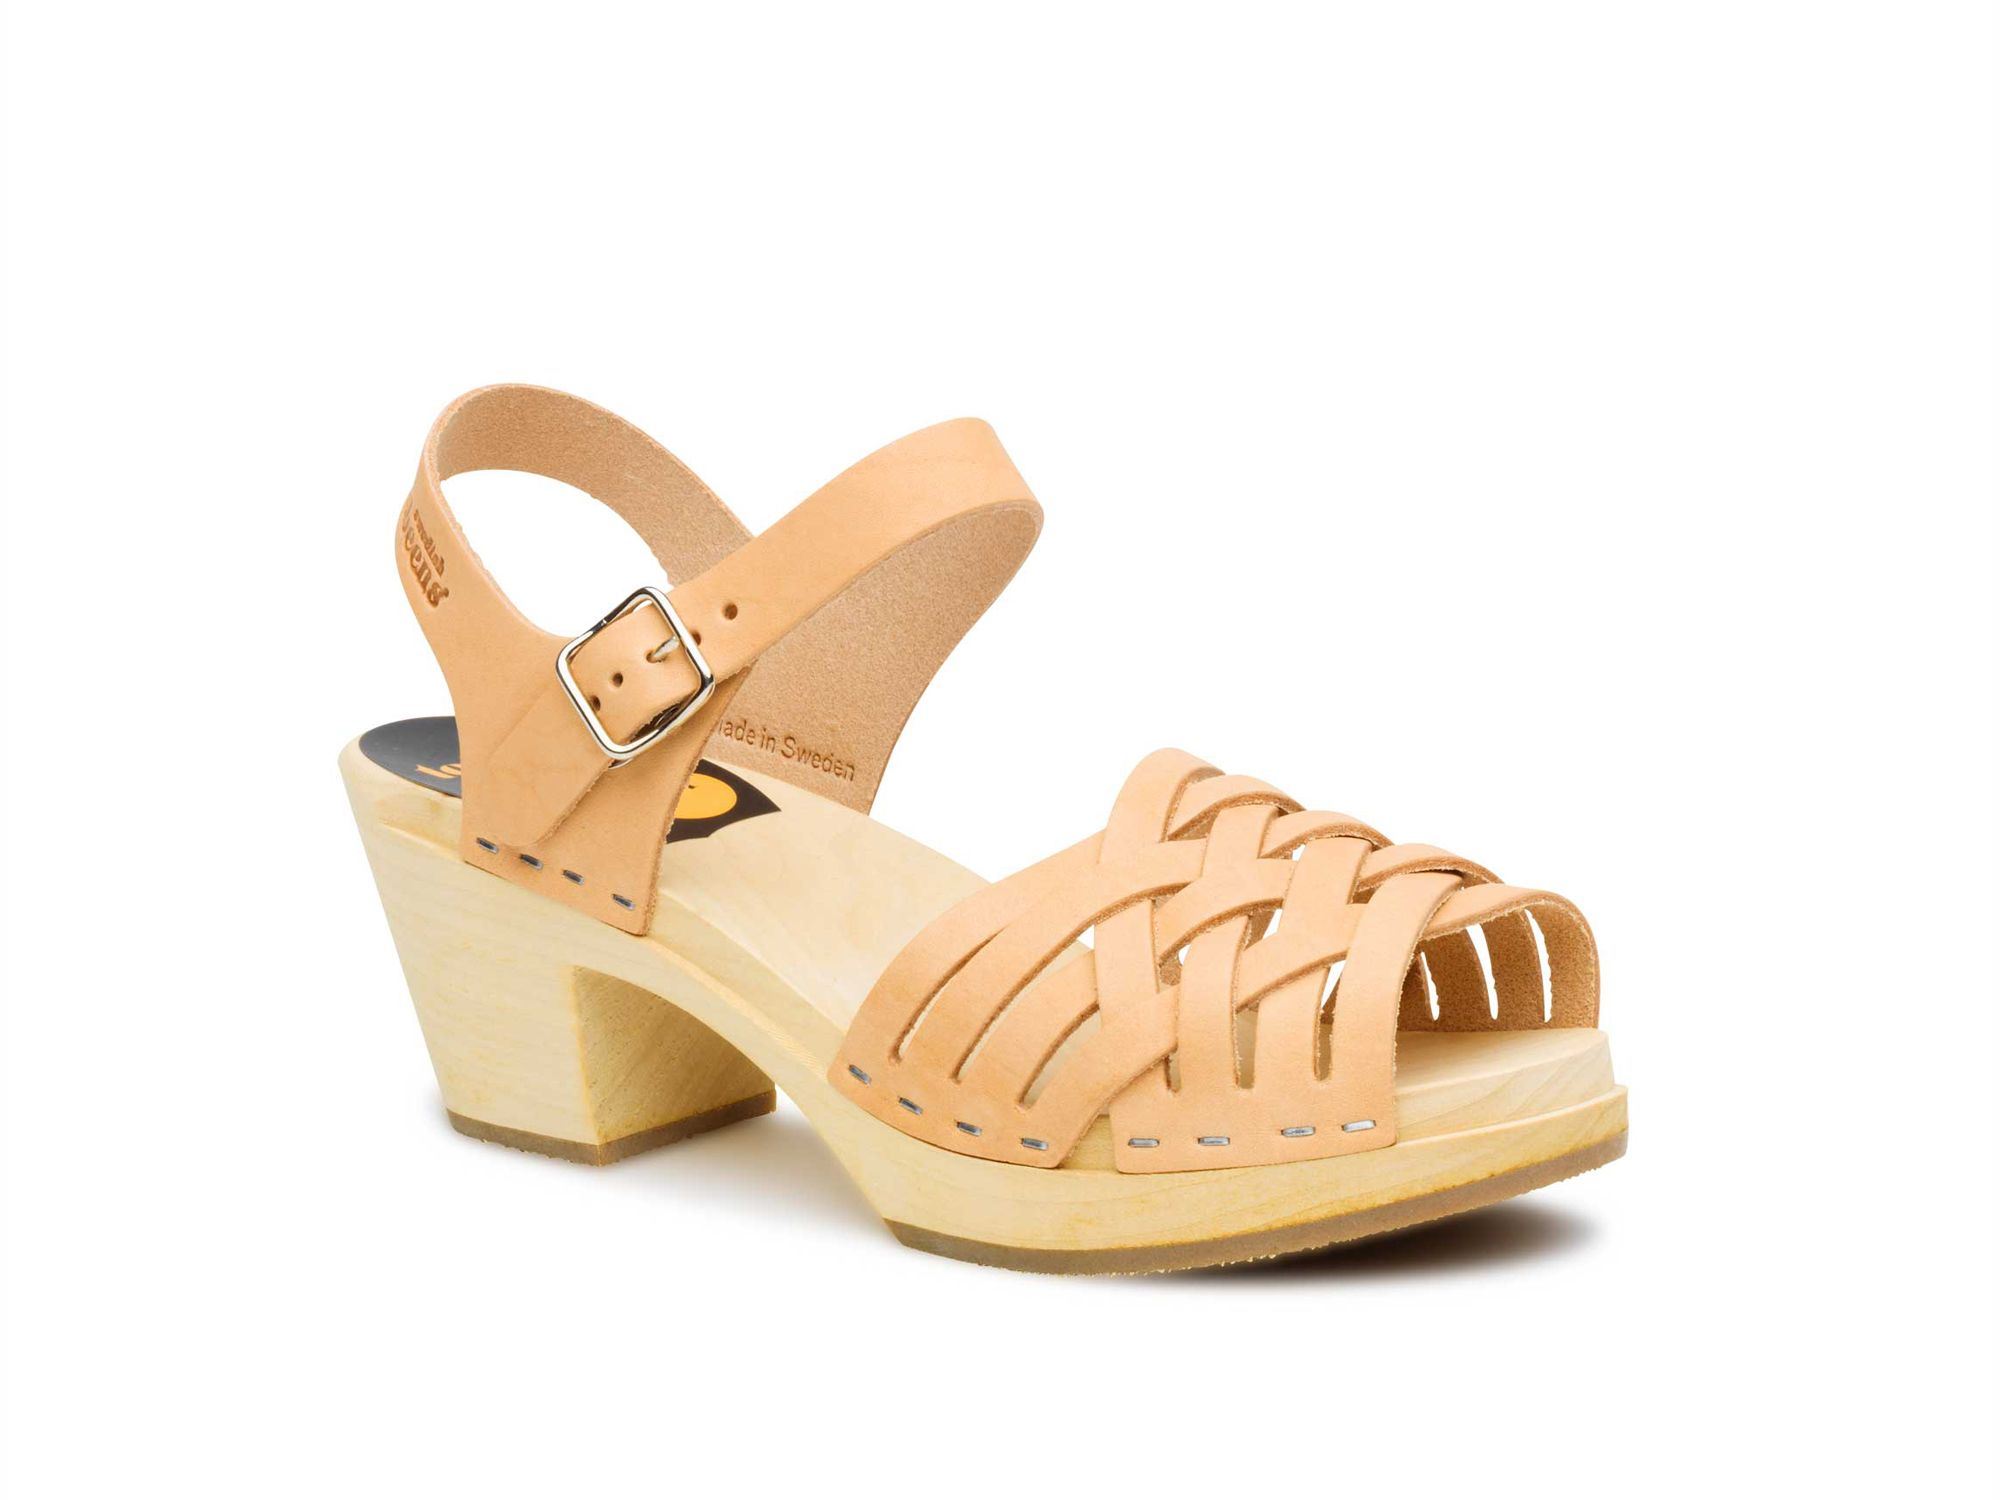 Swedish Hasbeens Braided high sandals, Natural